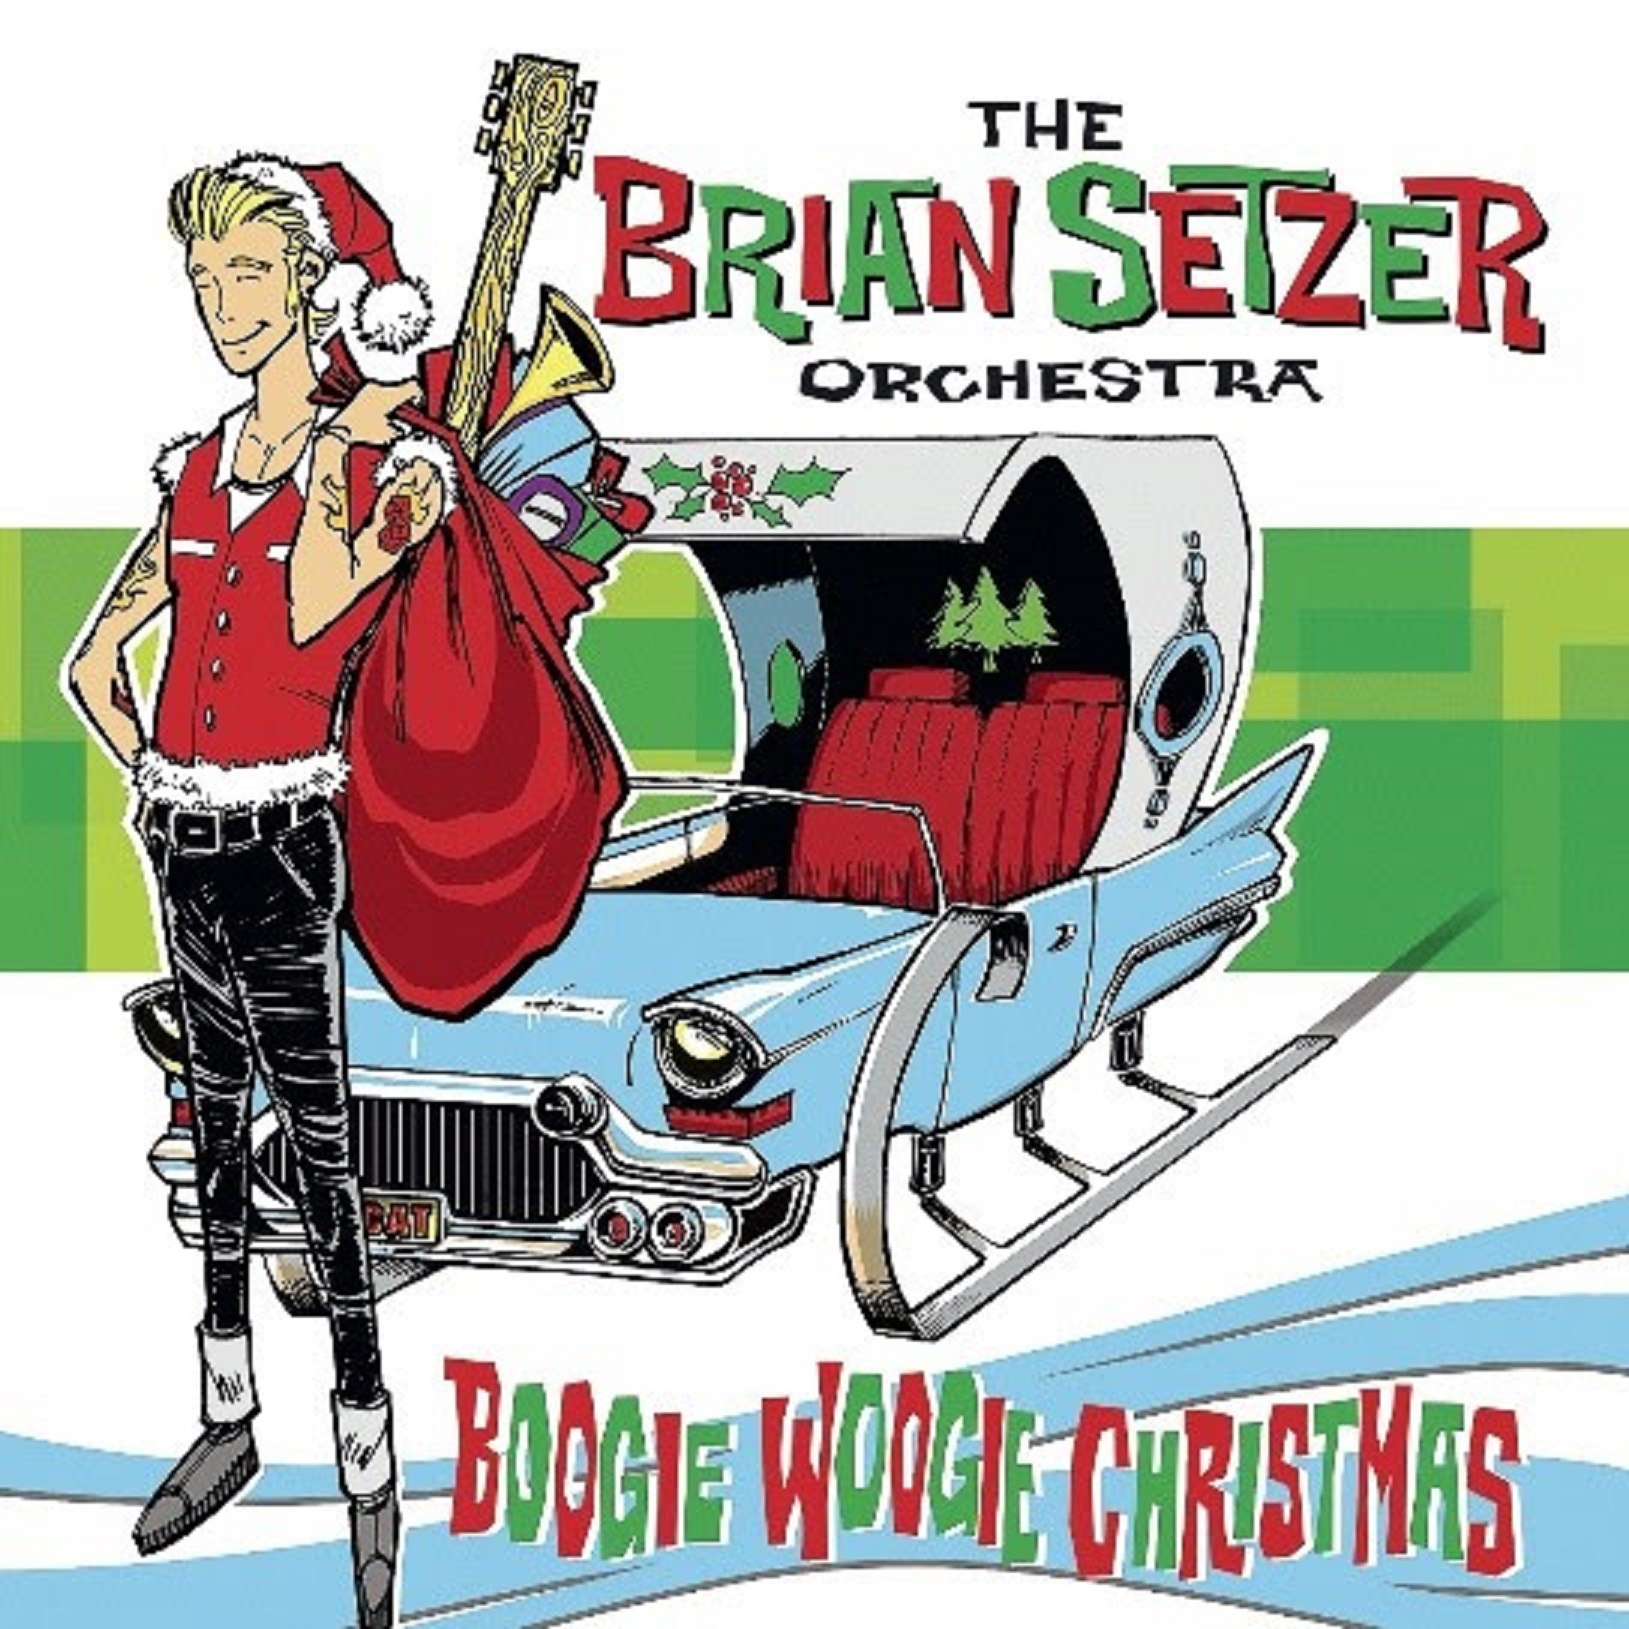 Two Albums by the BRIAN SETZER ORCHESTRA to be Released November 8